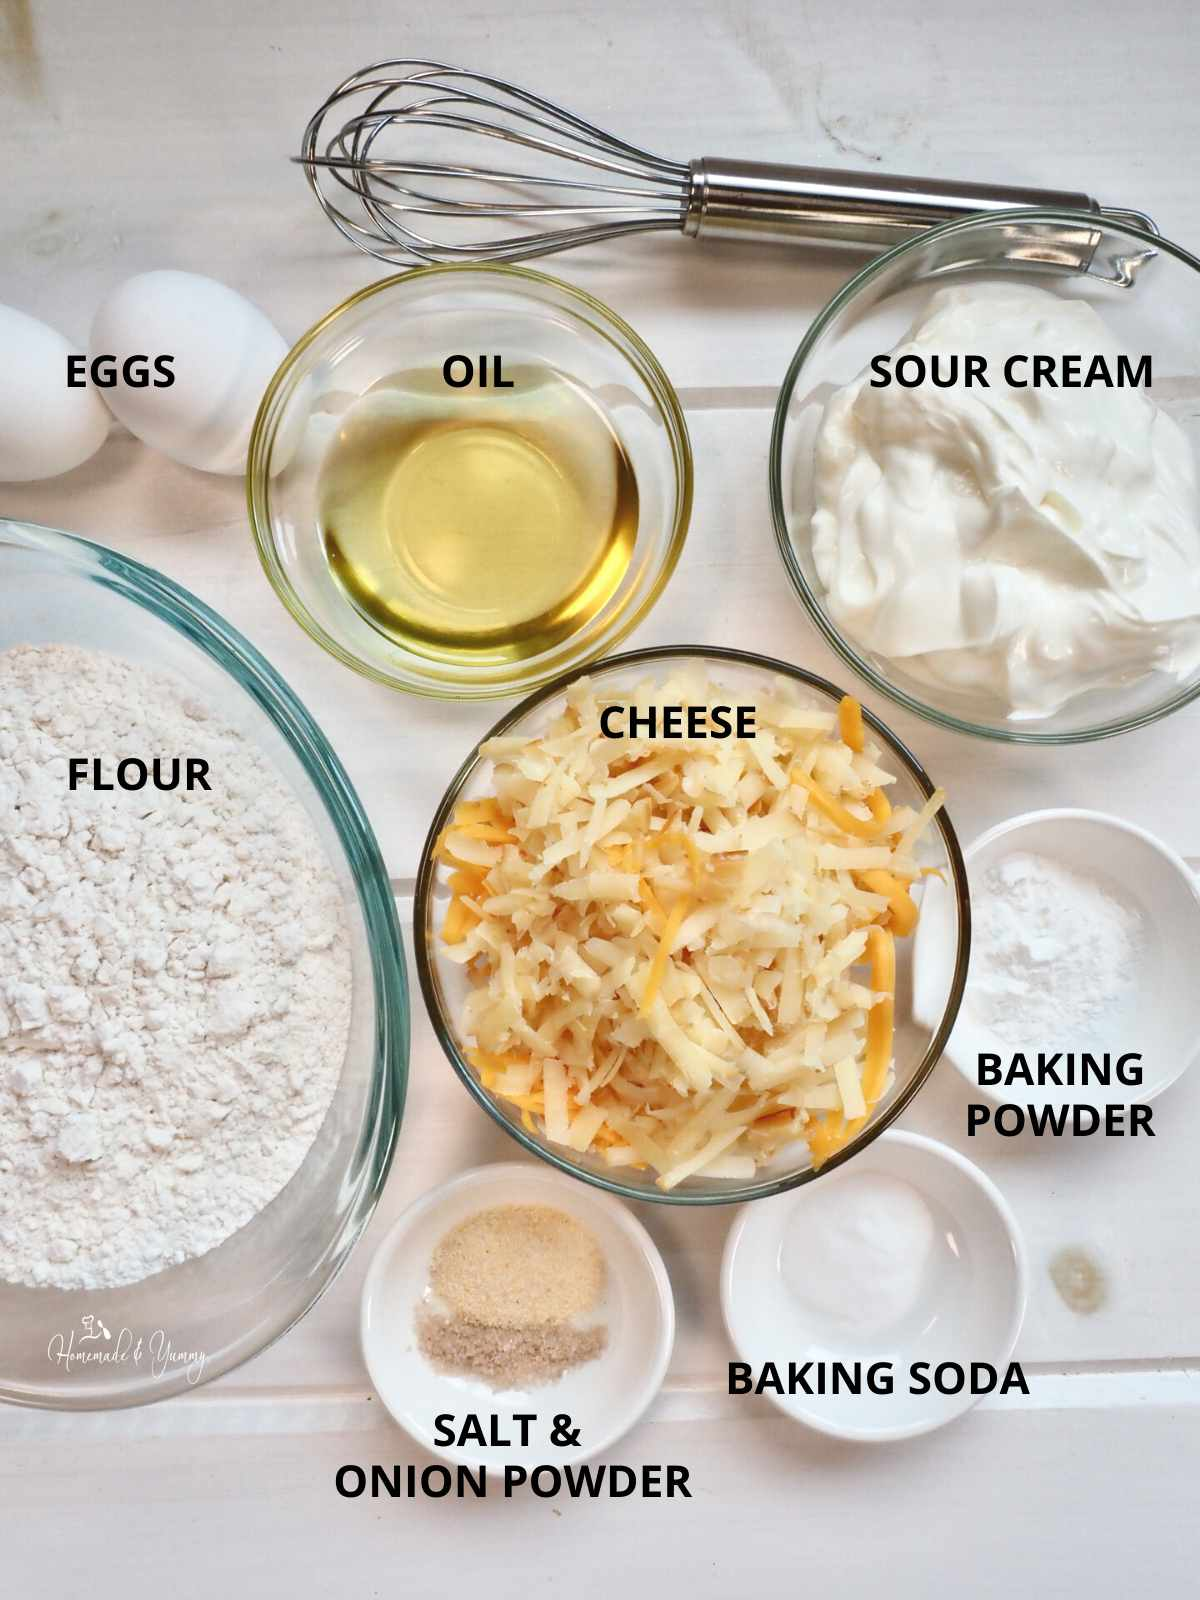 All the ingredients to make homemade cheese muffins.